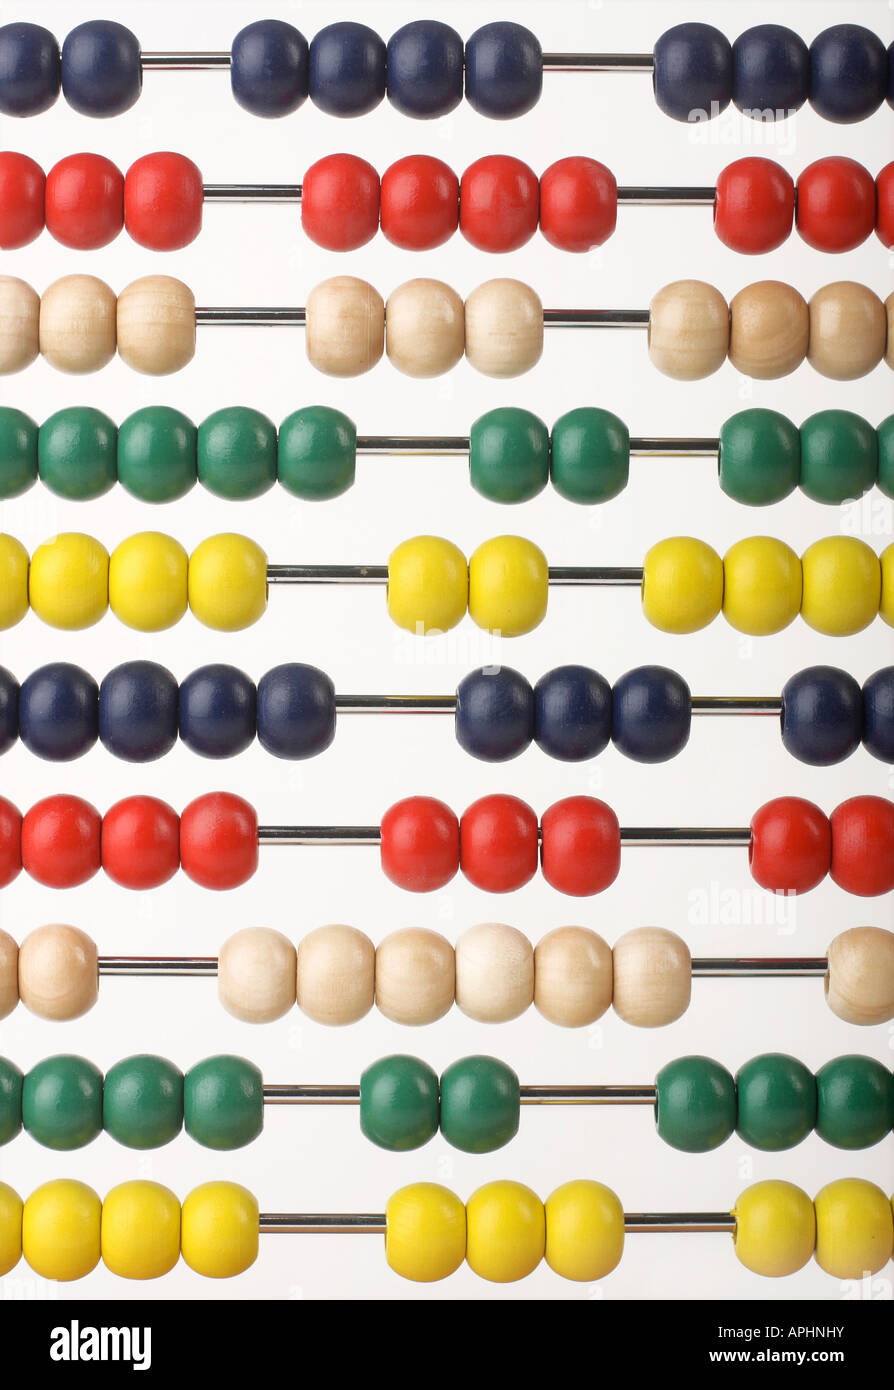 Abacus caclulator with colored beads - Stock Image